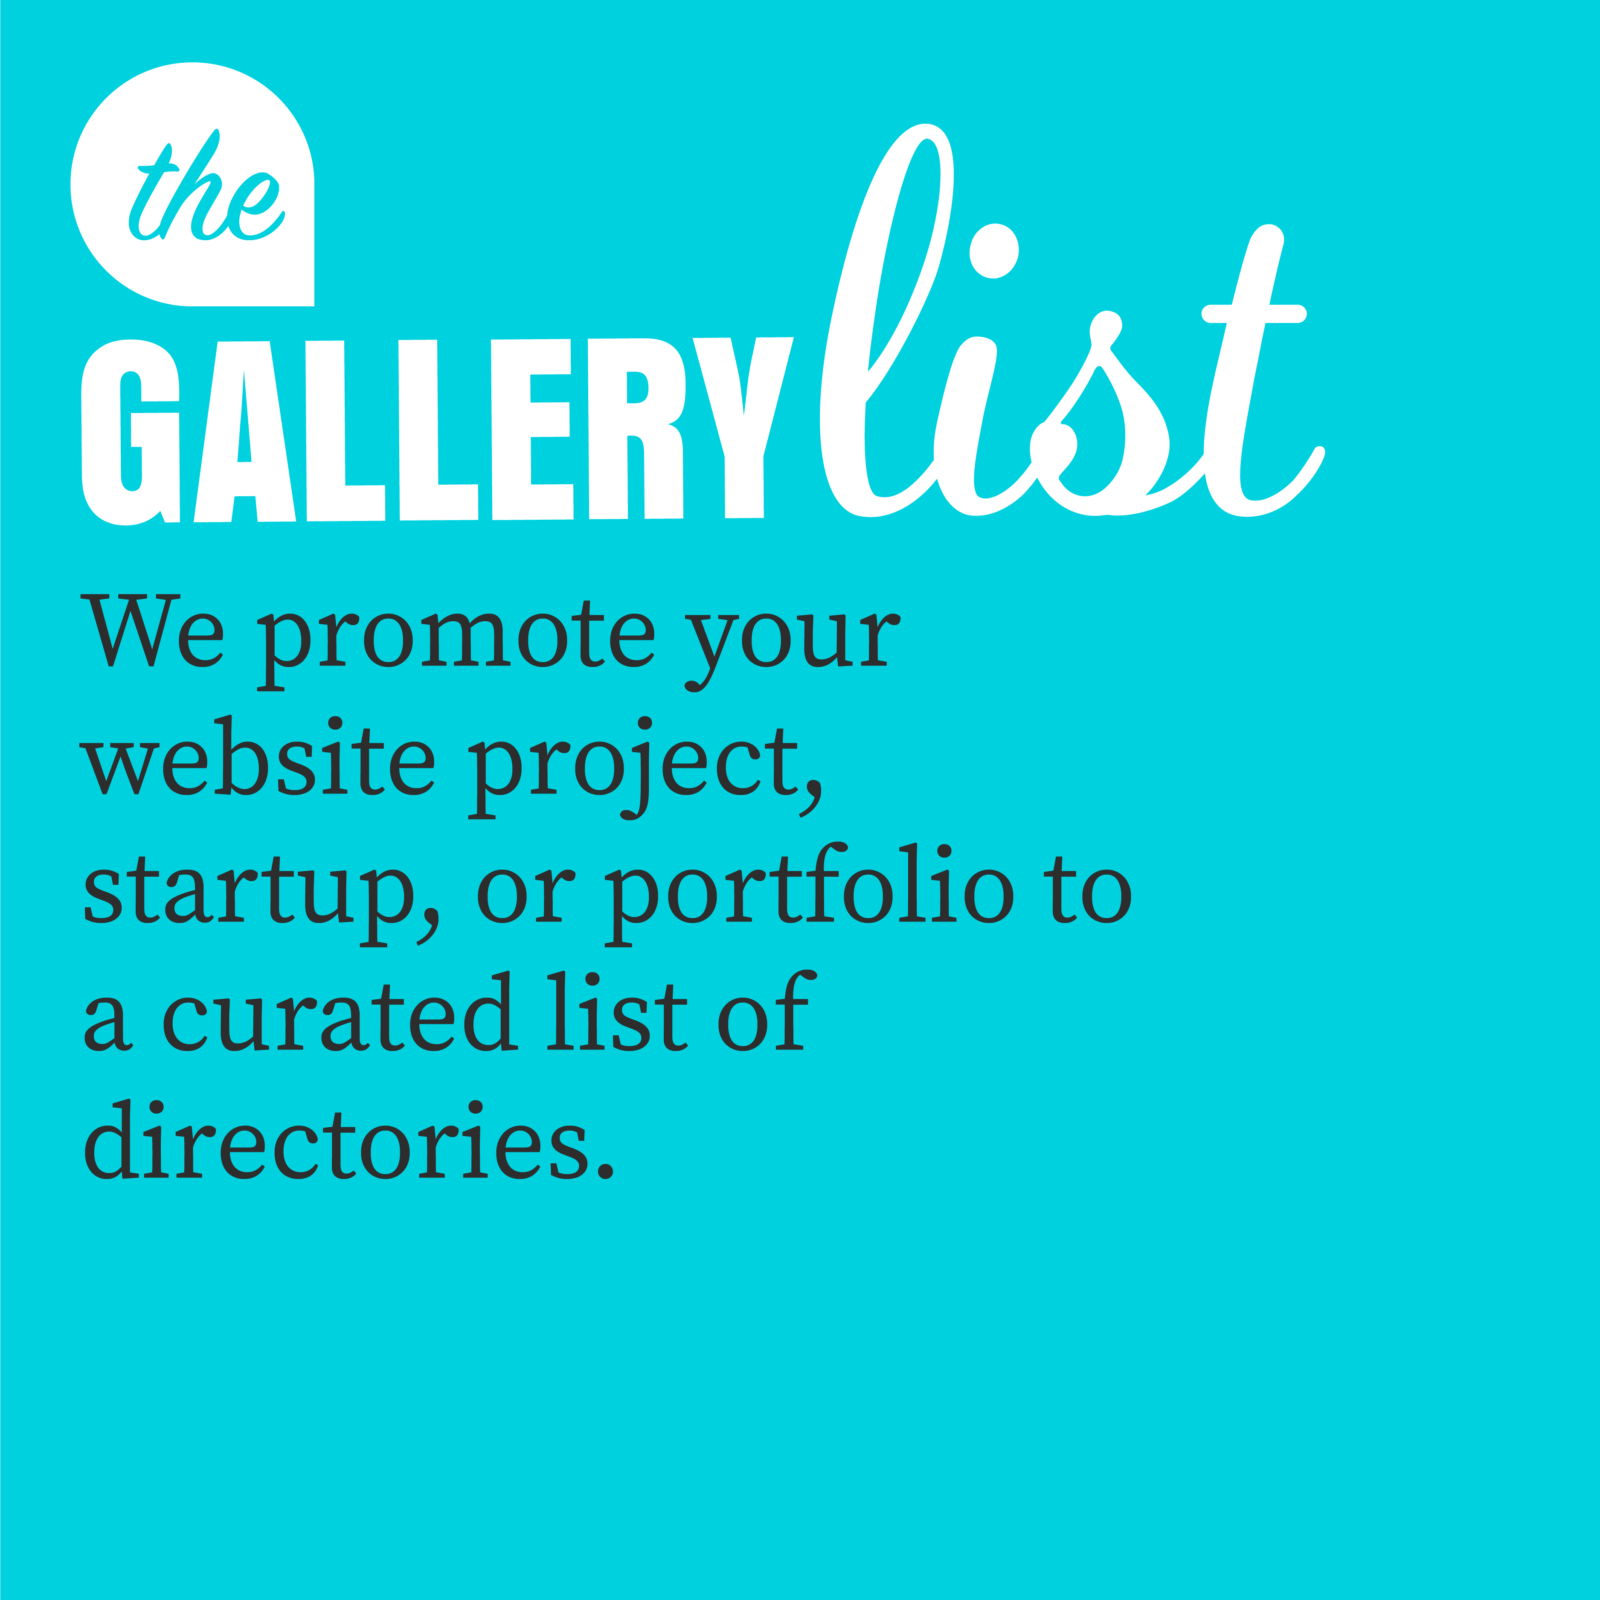 The Gallery list